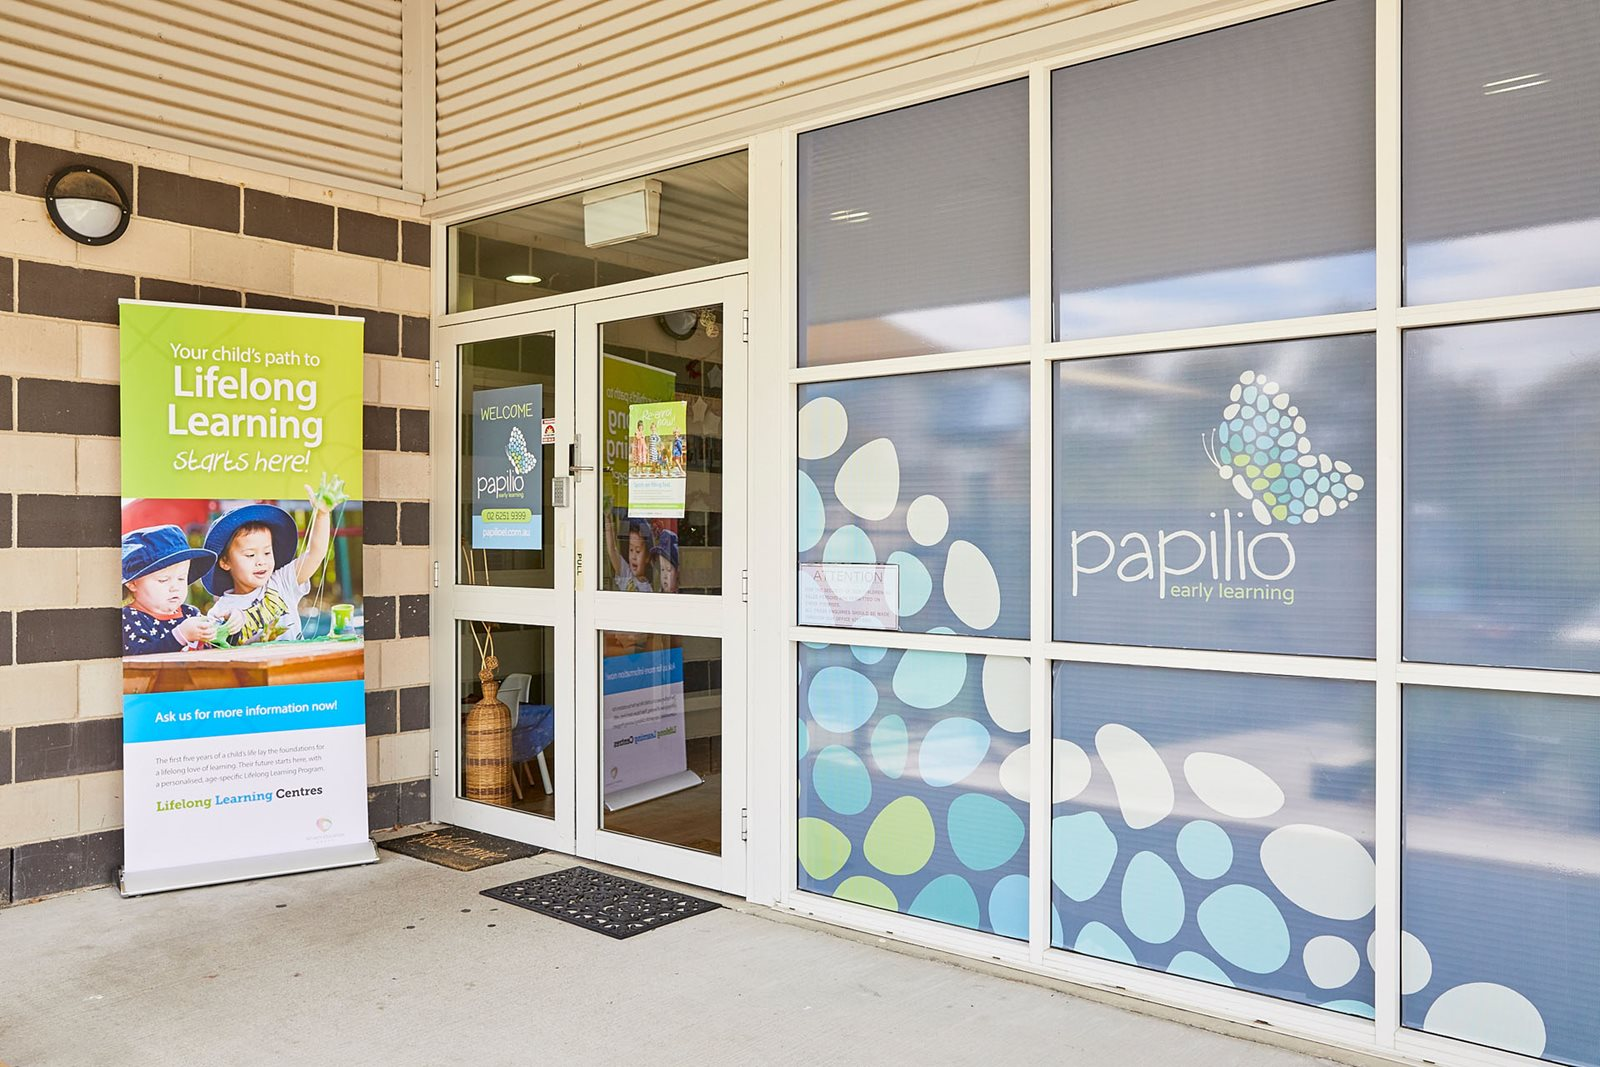 Papilio Early Learning Bruce child care centre entry with signs on windows